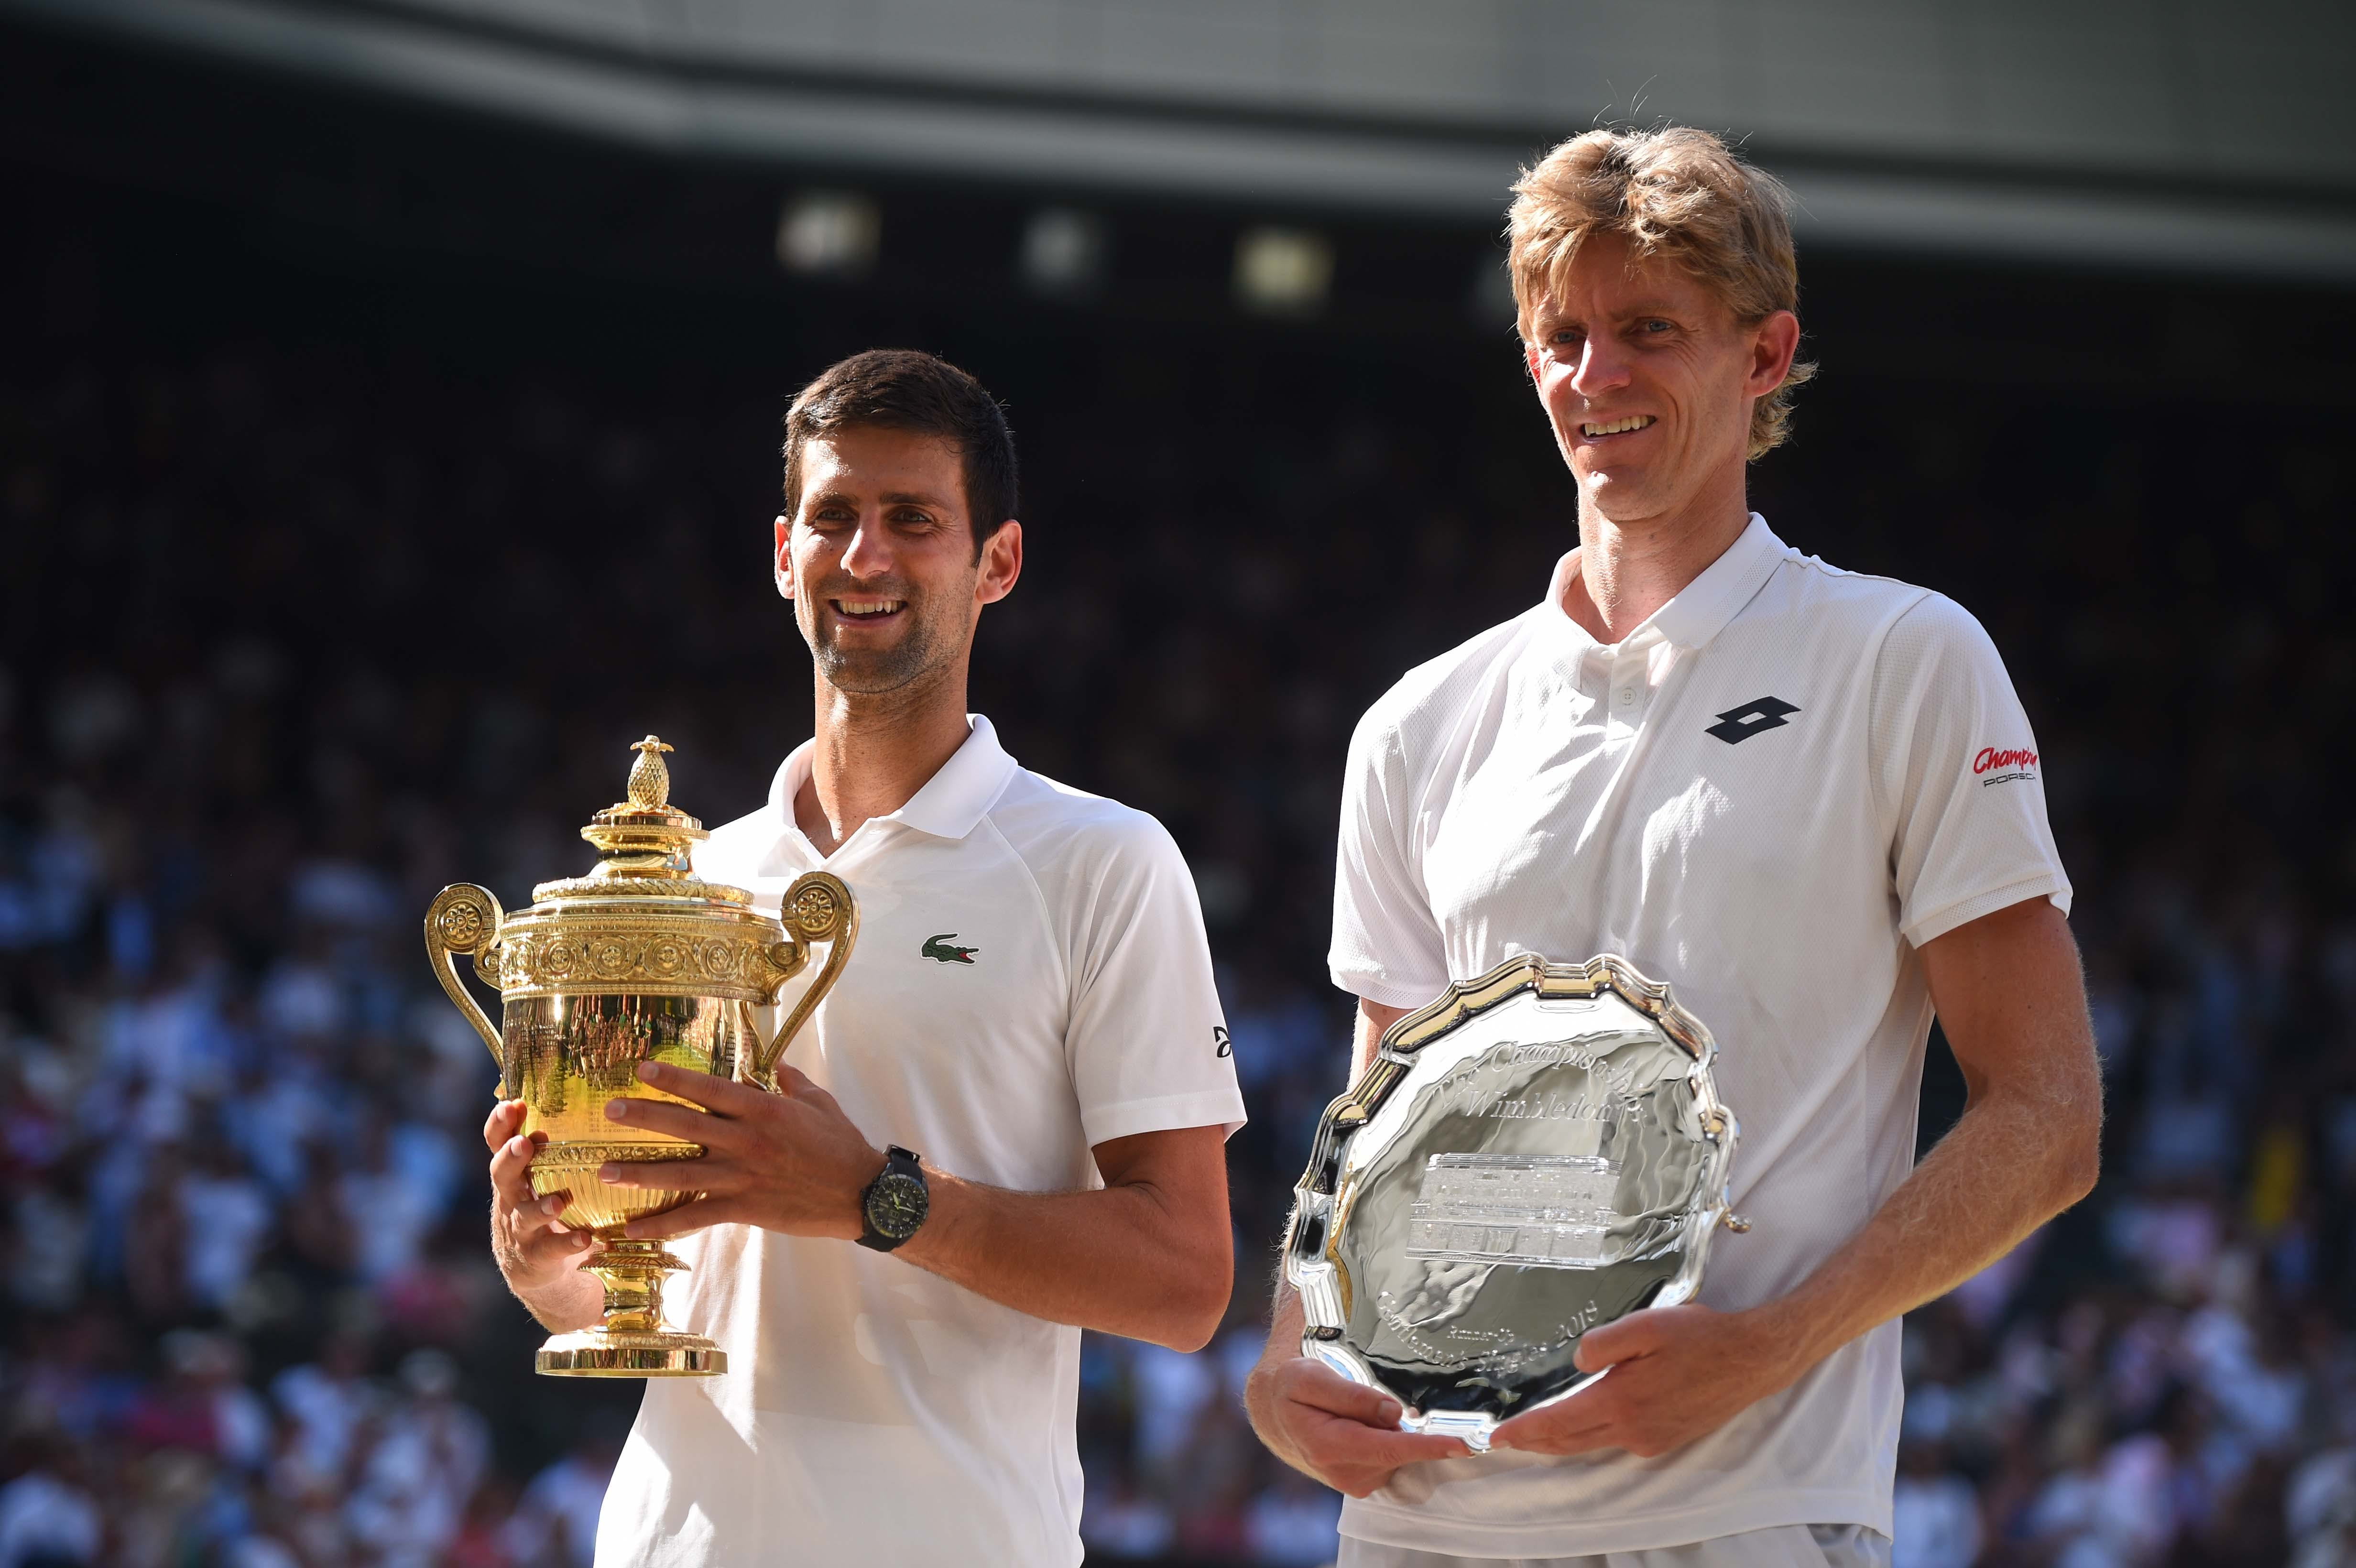 Novak Djokovic and Kevin Anderson trophy ceremony Wimbledon 2018